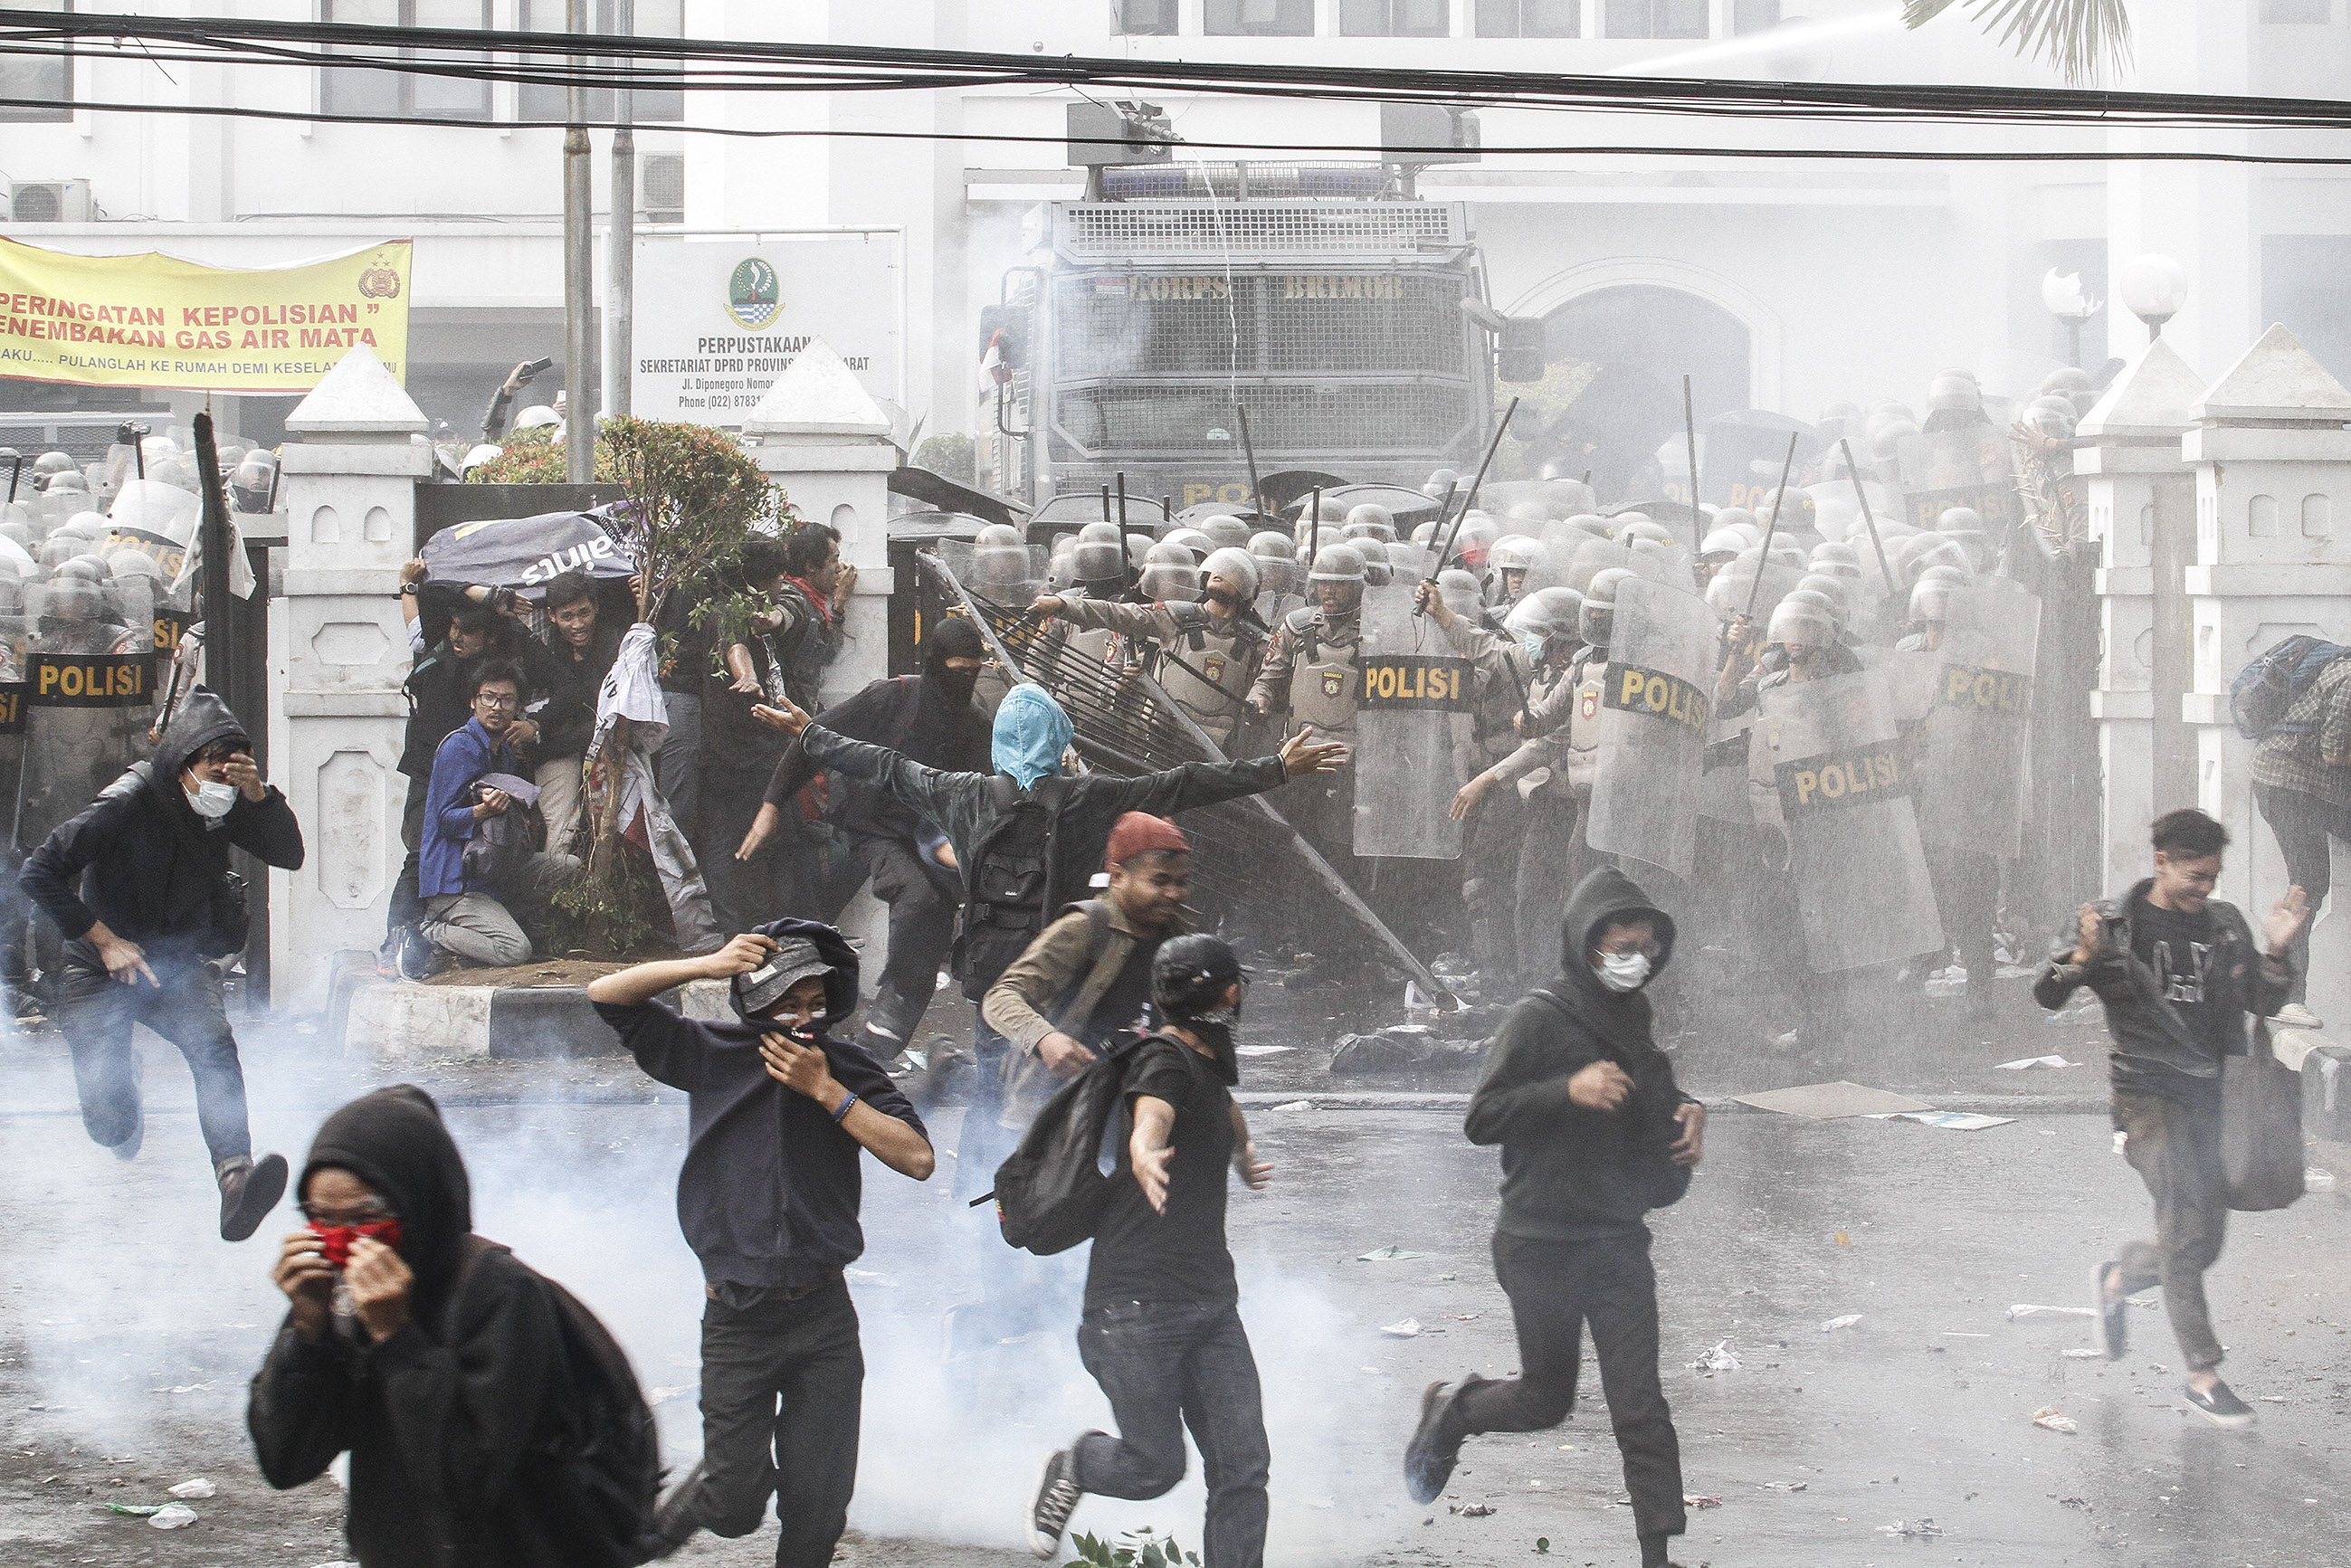 [UPDATED] Hundreds injured, arrested as Jakarta protest ends in clashes on Monday